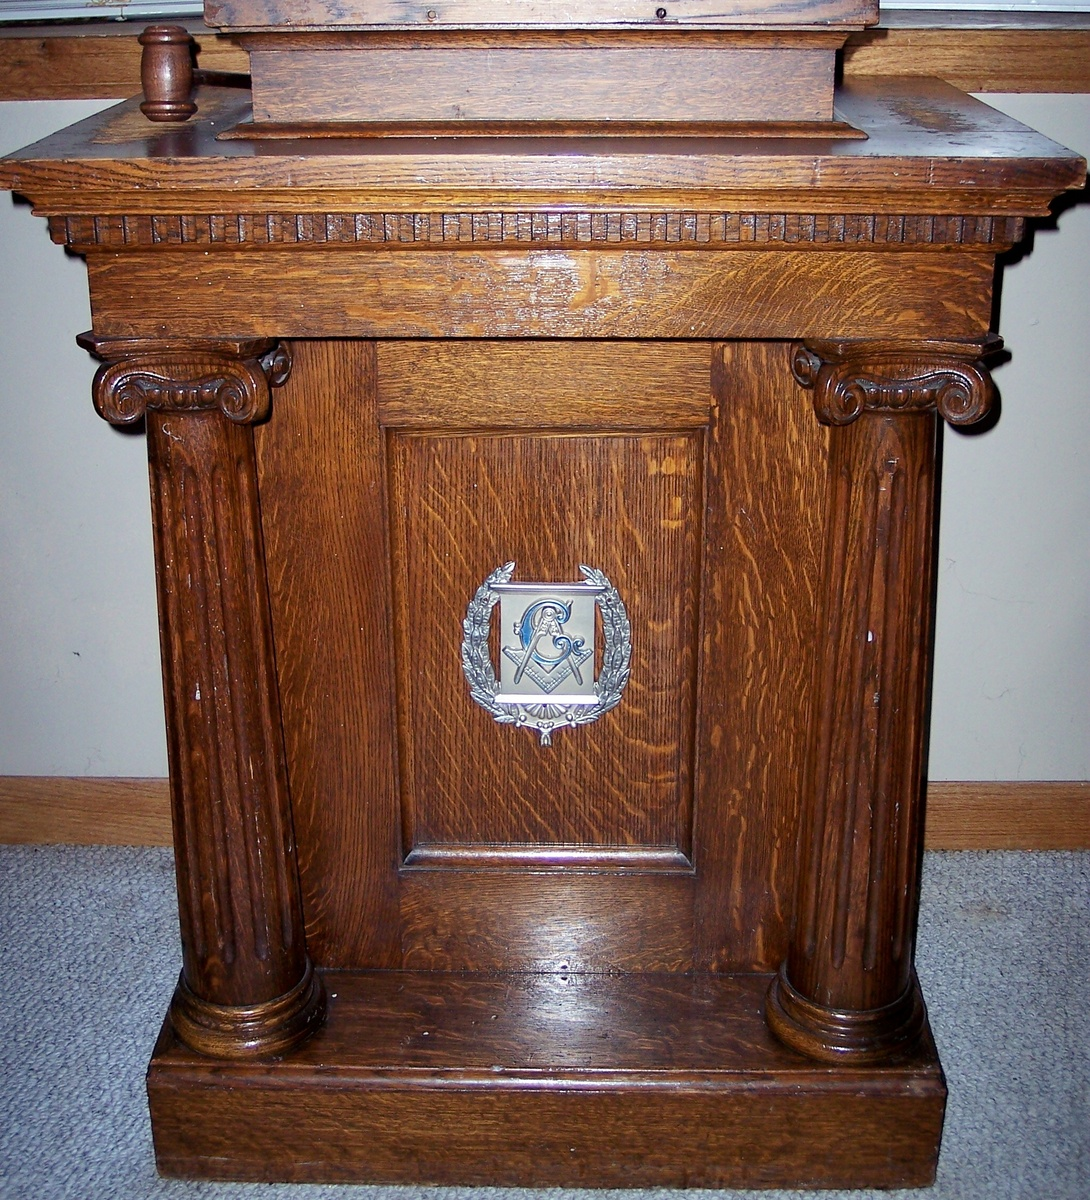 Masonic Lodge Furniture